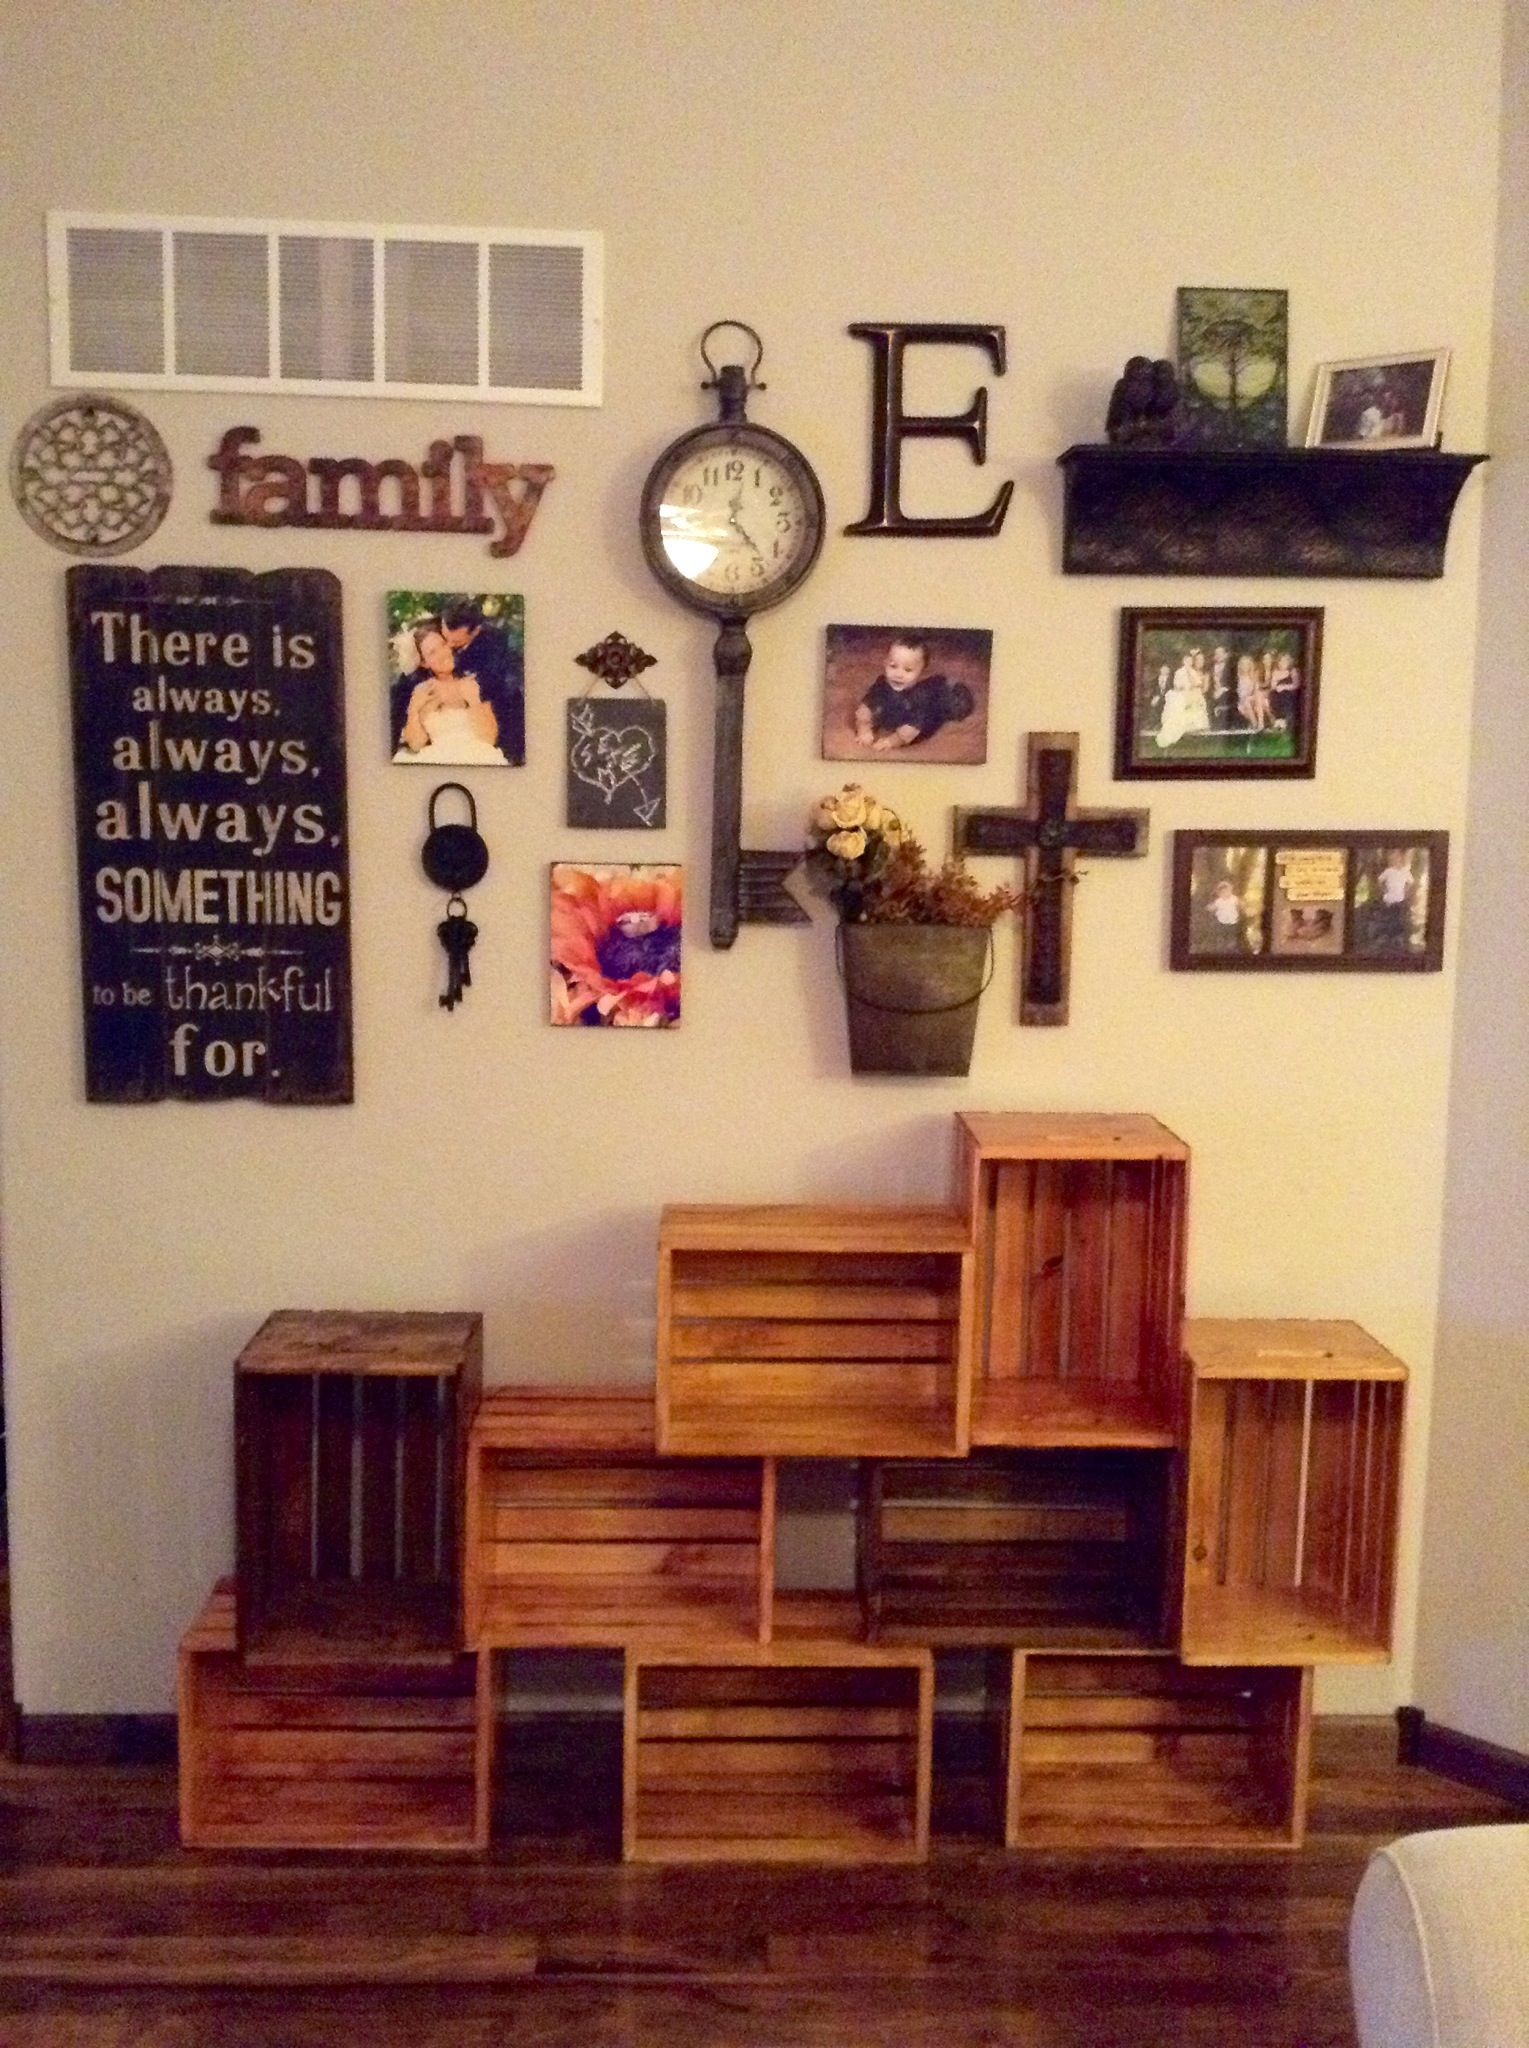 Wanddekoration Ideen Wohnzimmer Living Room Wall Decor Wood Crate Shelf Bedroom Wall